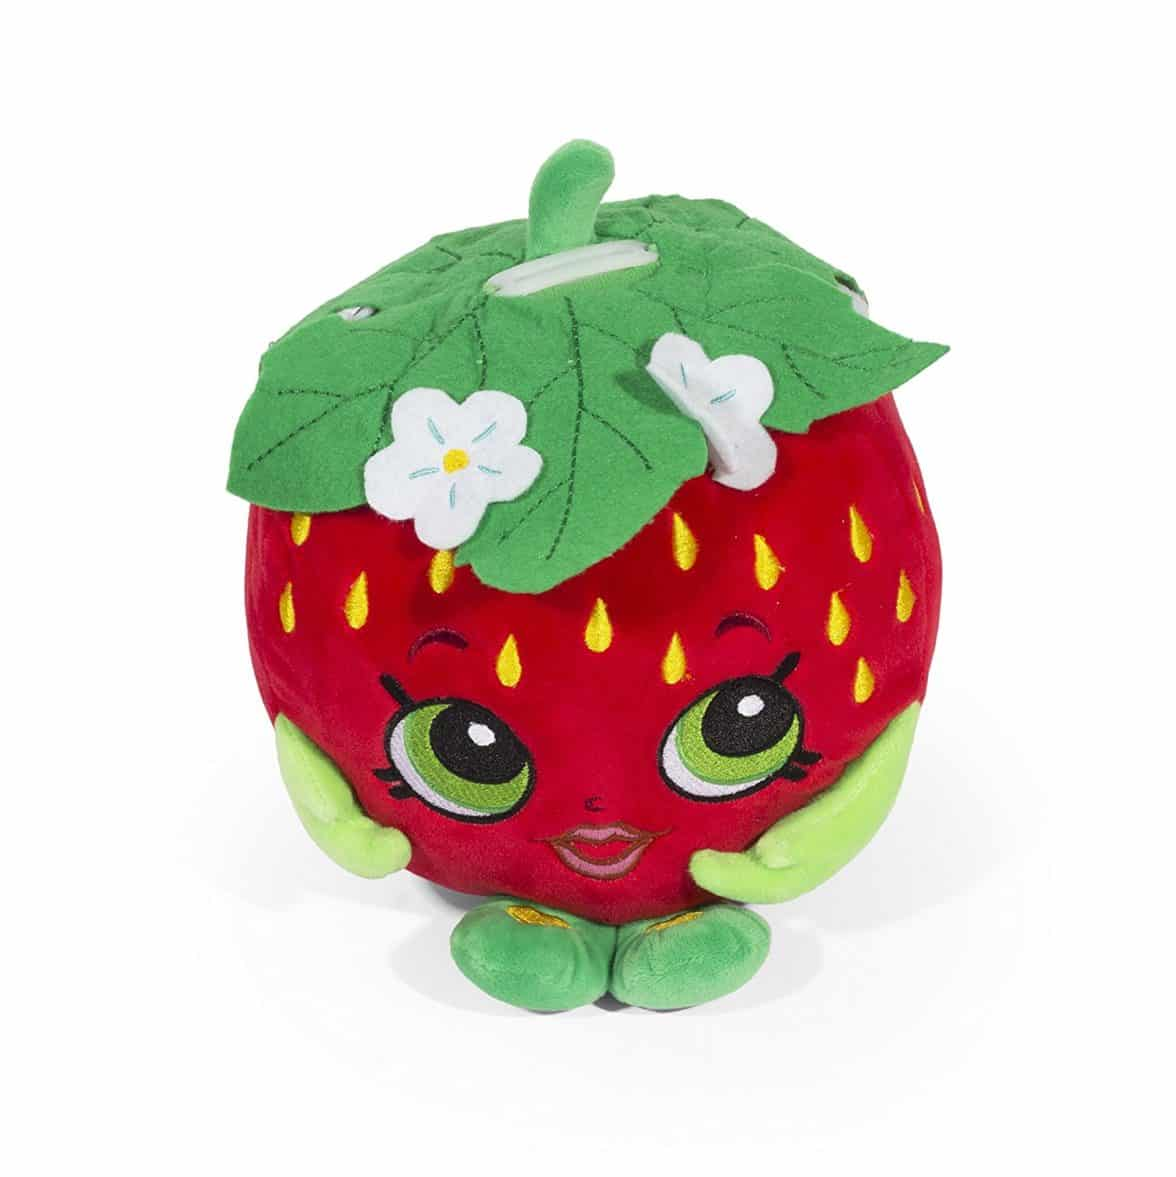 Shopkins Strawberry Kiss Plush Coin Bank